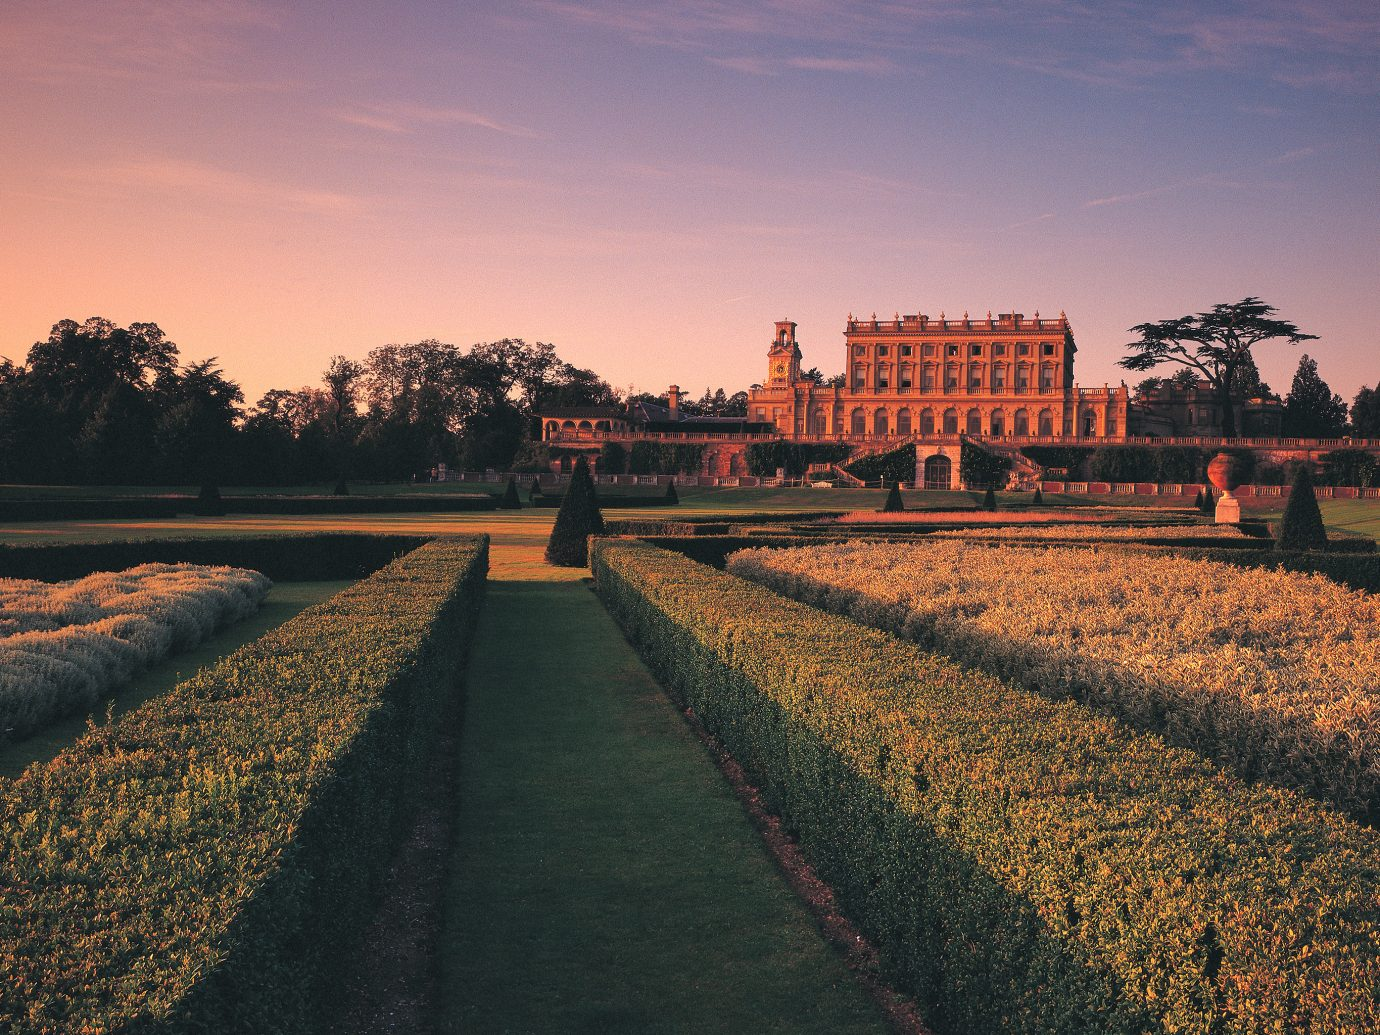 exterior and field front of Cliveden House